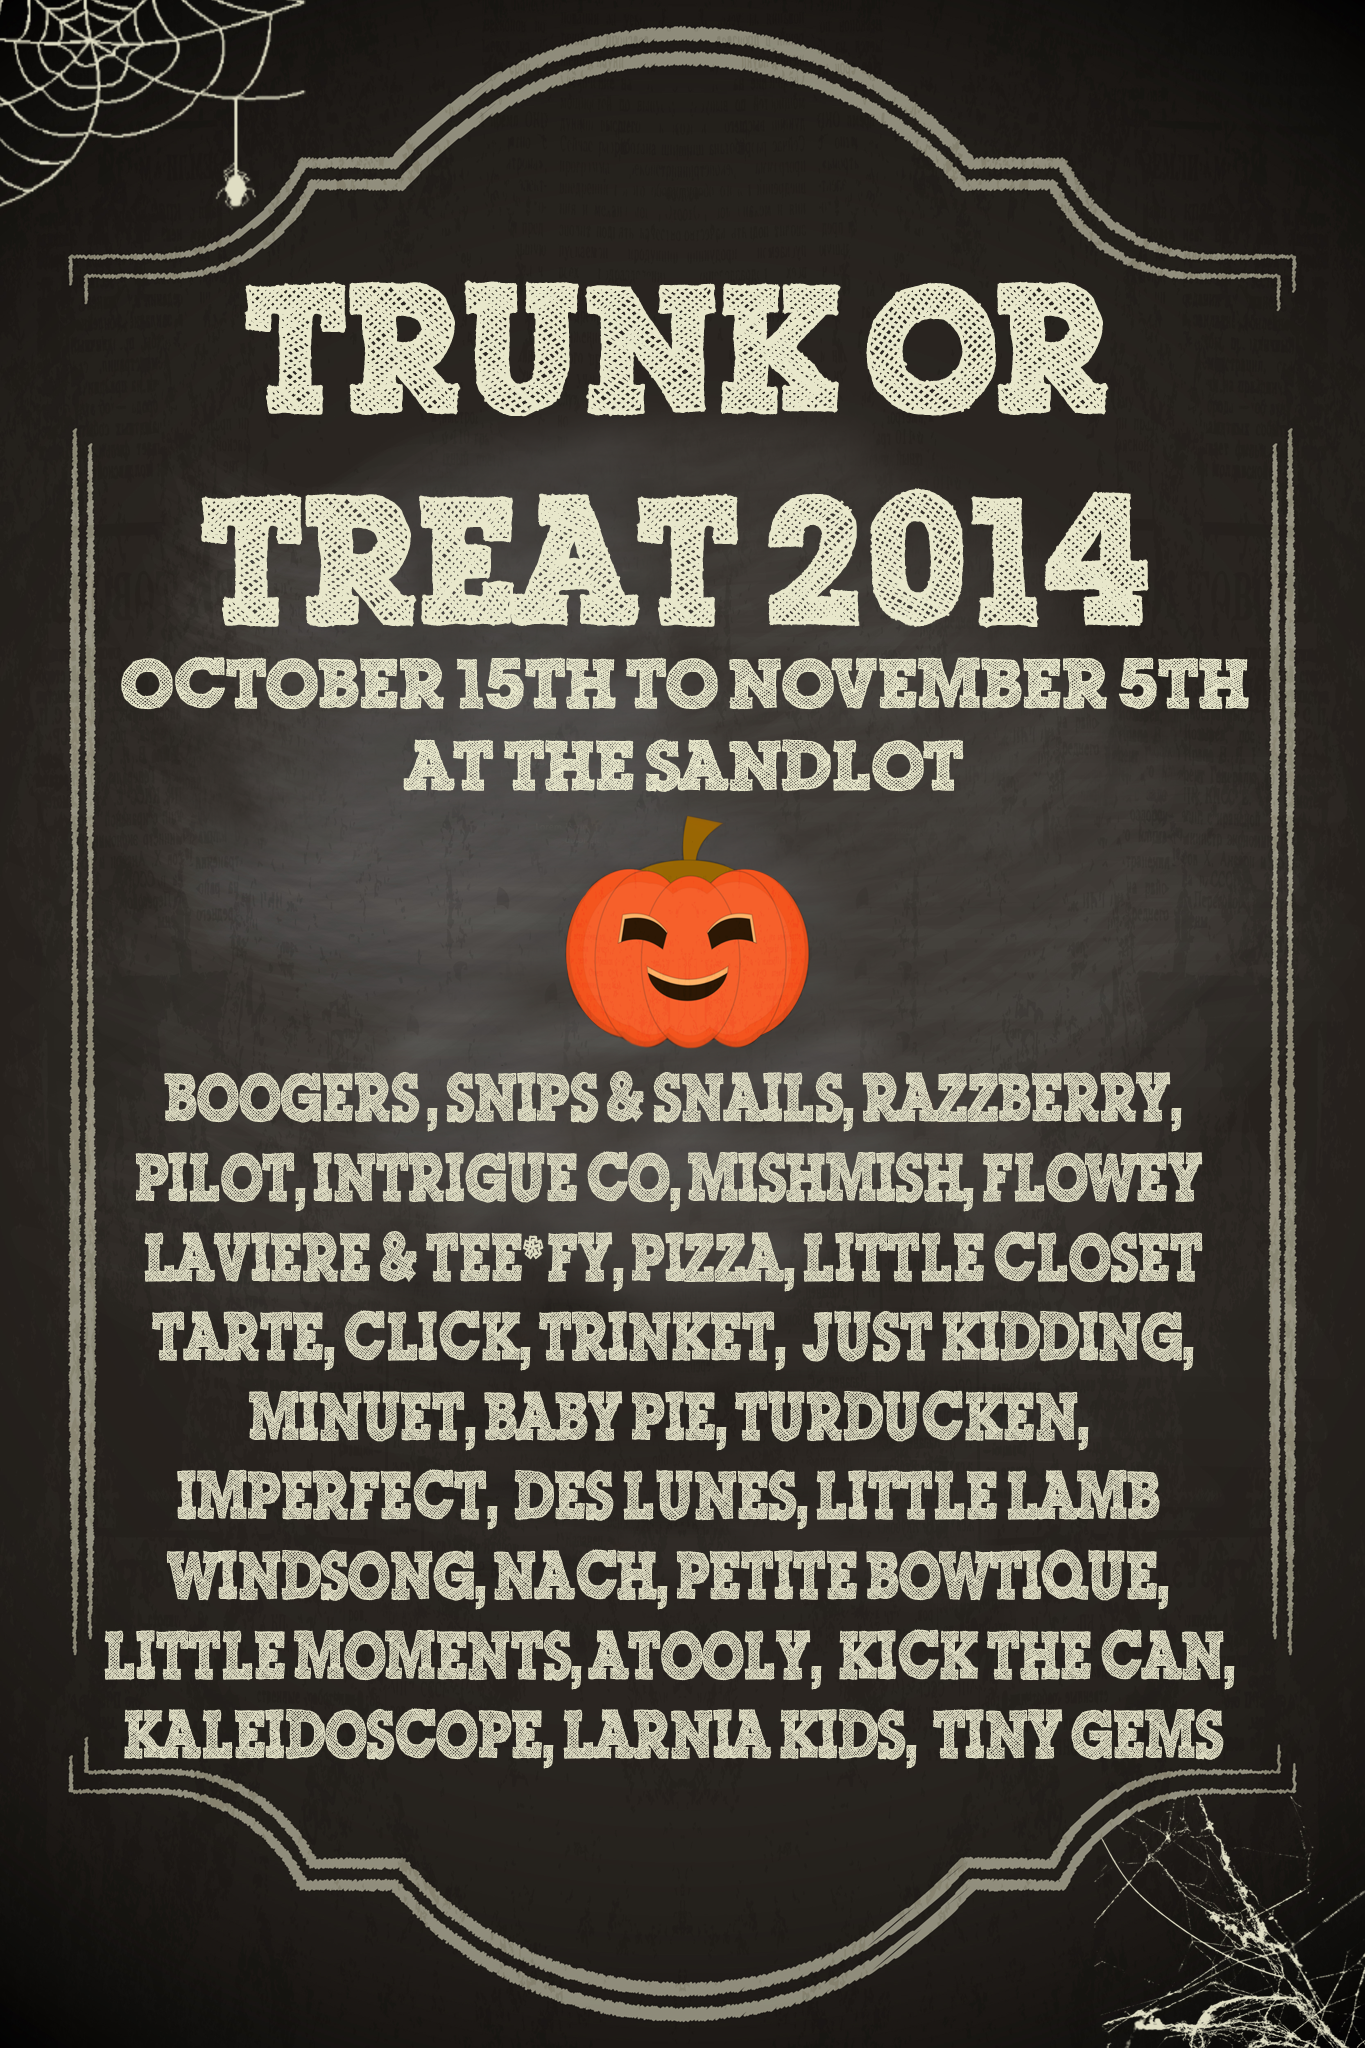 Trunk or Treat 2014 is comingggg